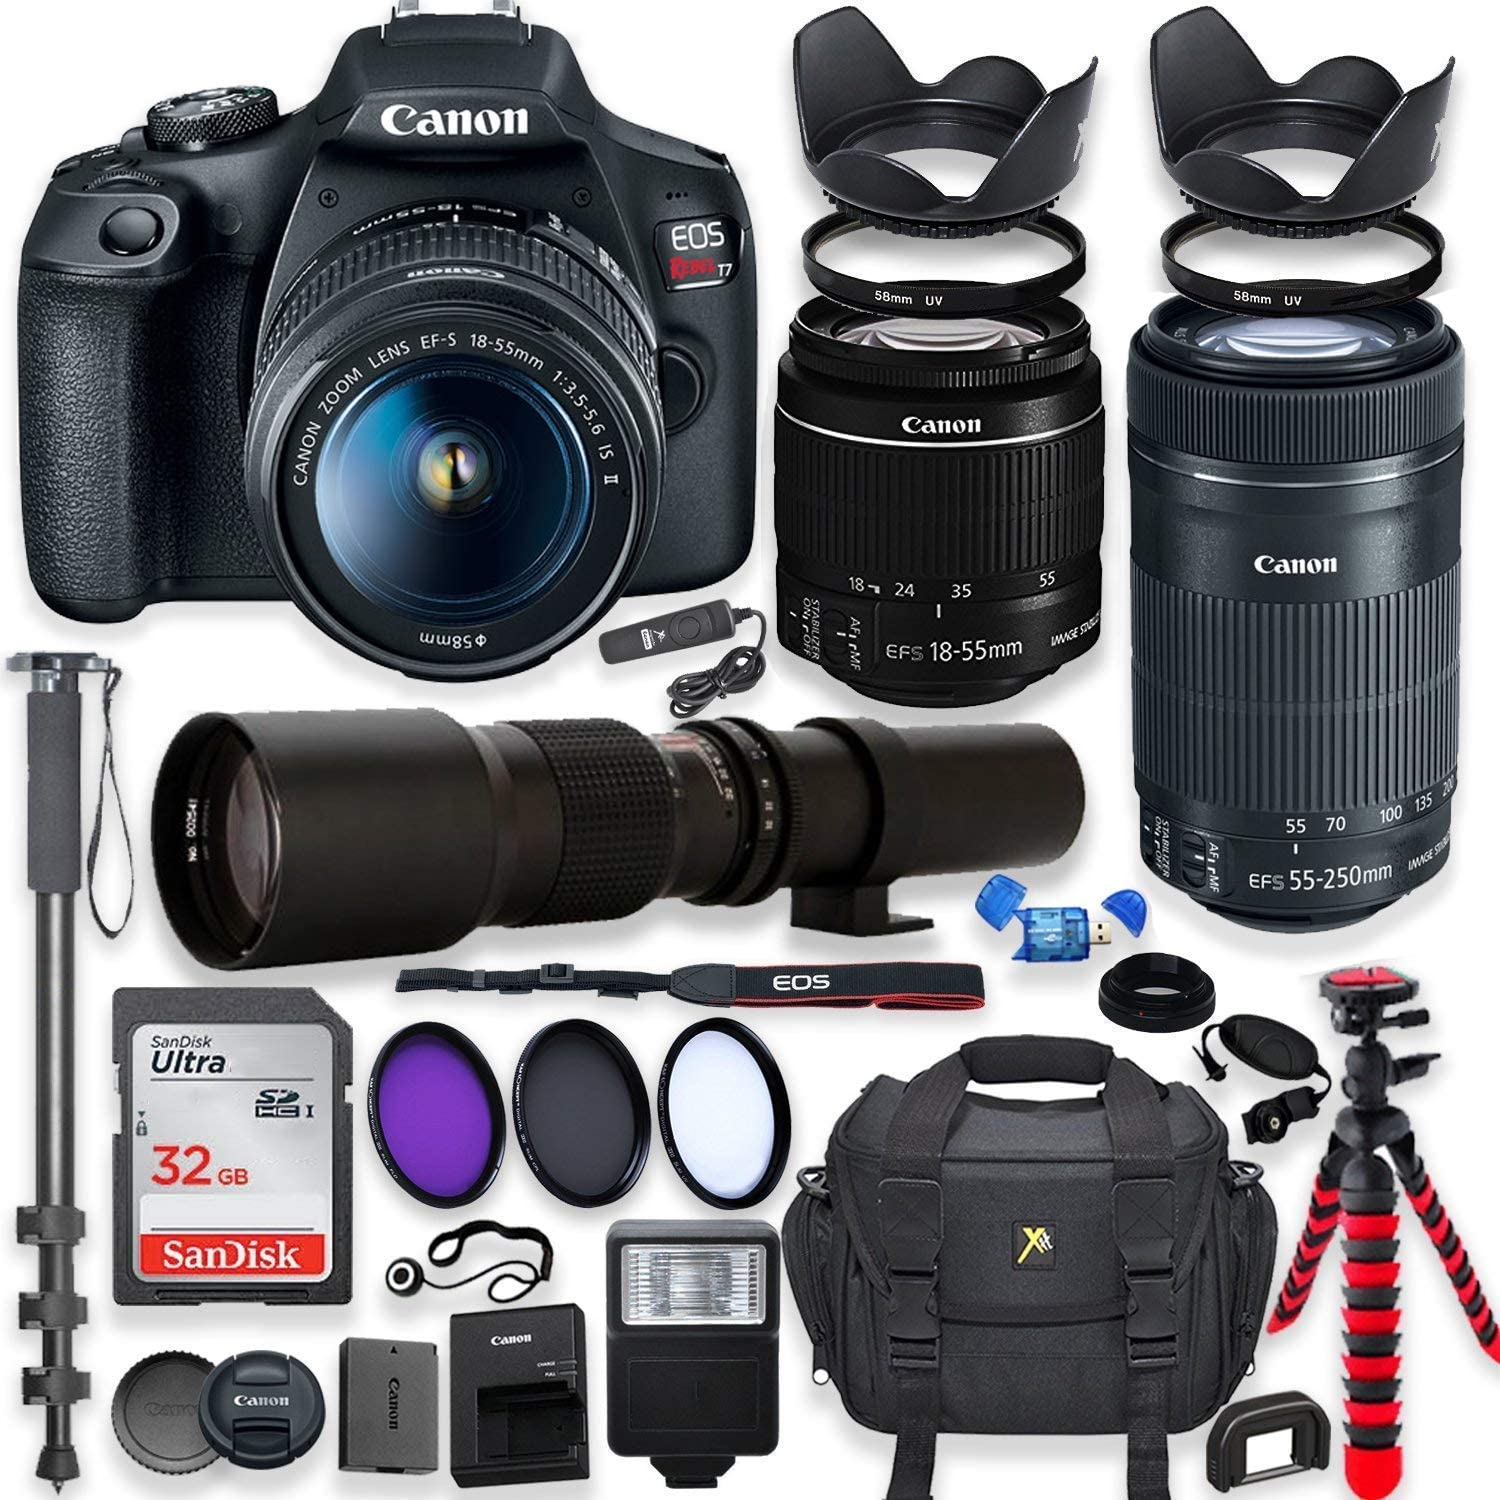 Canon EOS Rebel T7 DSLR Camera with 18-55mm is II Lens Bundle + Canon EF-S 55-250mm STM Lens and 500mm Preset Lens + 32GB Memory + Filters + Monopod + Spider Flex Tripod + Professional Bundle